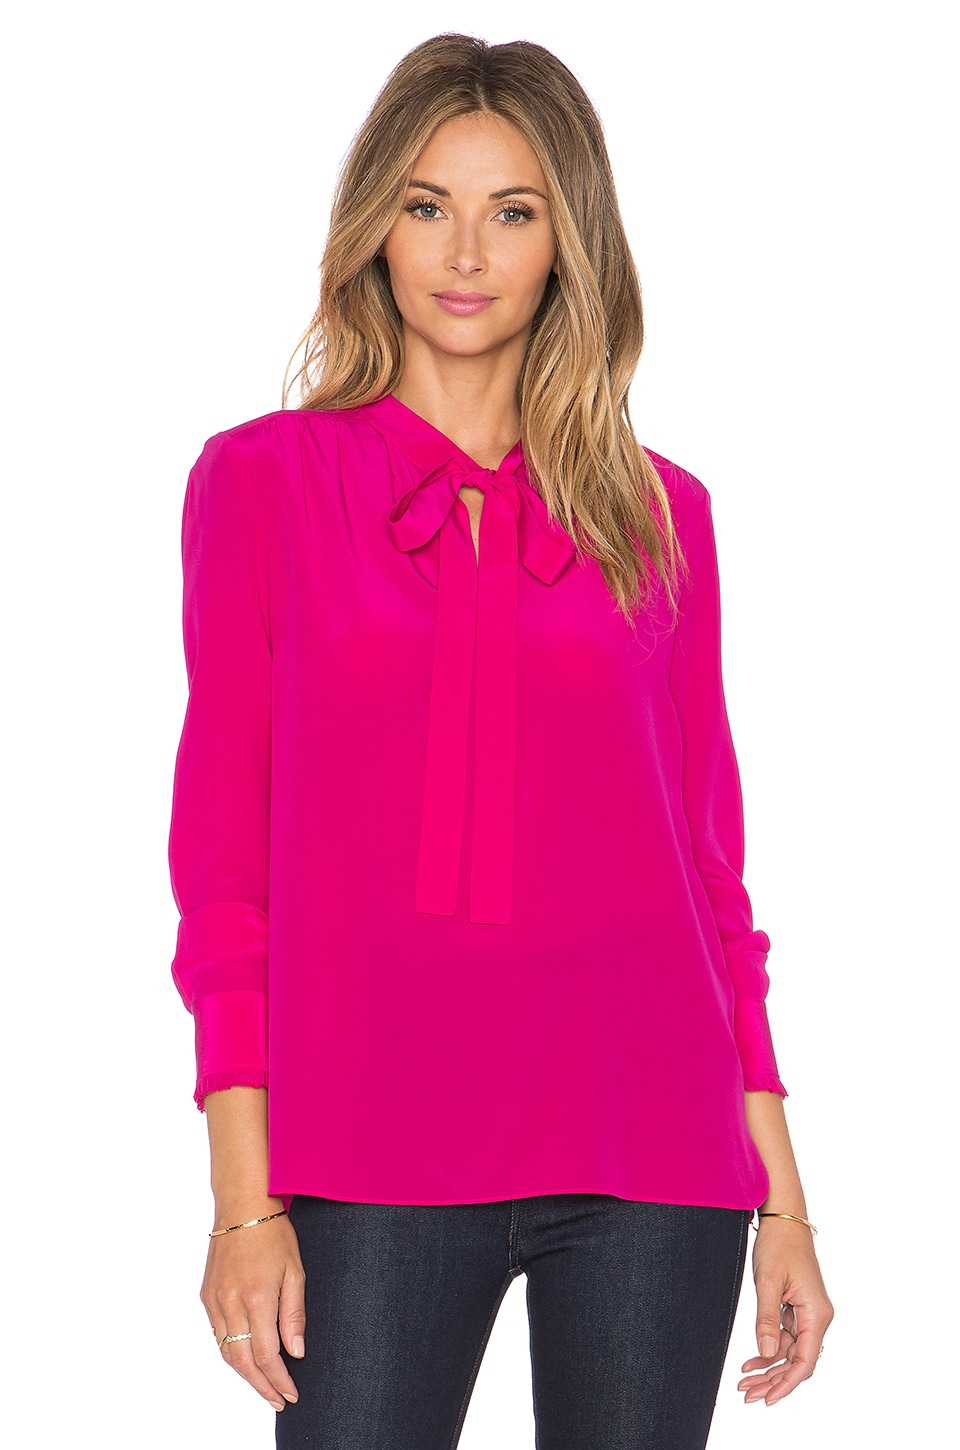 kate spade new york Bow Neck Top in Sweetheart PInk